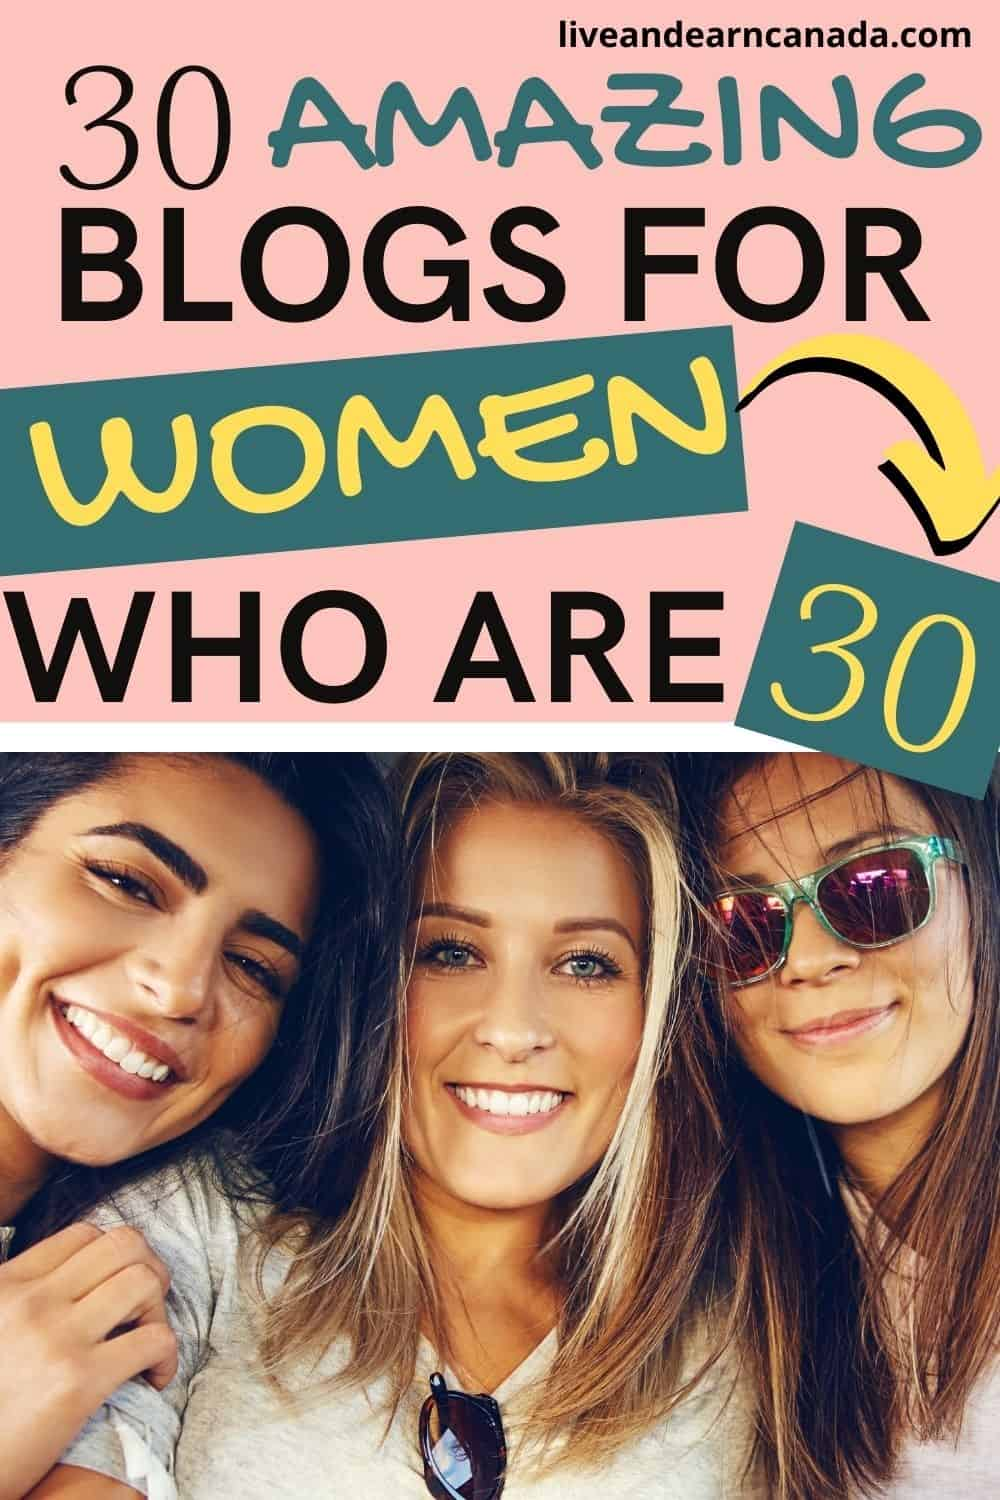 Here is a list of blogs for women over 30! If you are 30 and you are looking for lifestyle blogs for 30 year olds, then click here. Think by the time you turn 30 you need to have this whole 'adult' thing down pat? You definitely don't, but there are certain things women should know by the time 30 comes around (or even sooner).